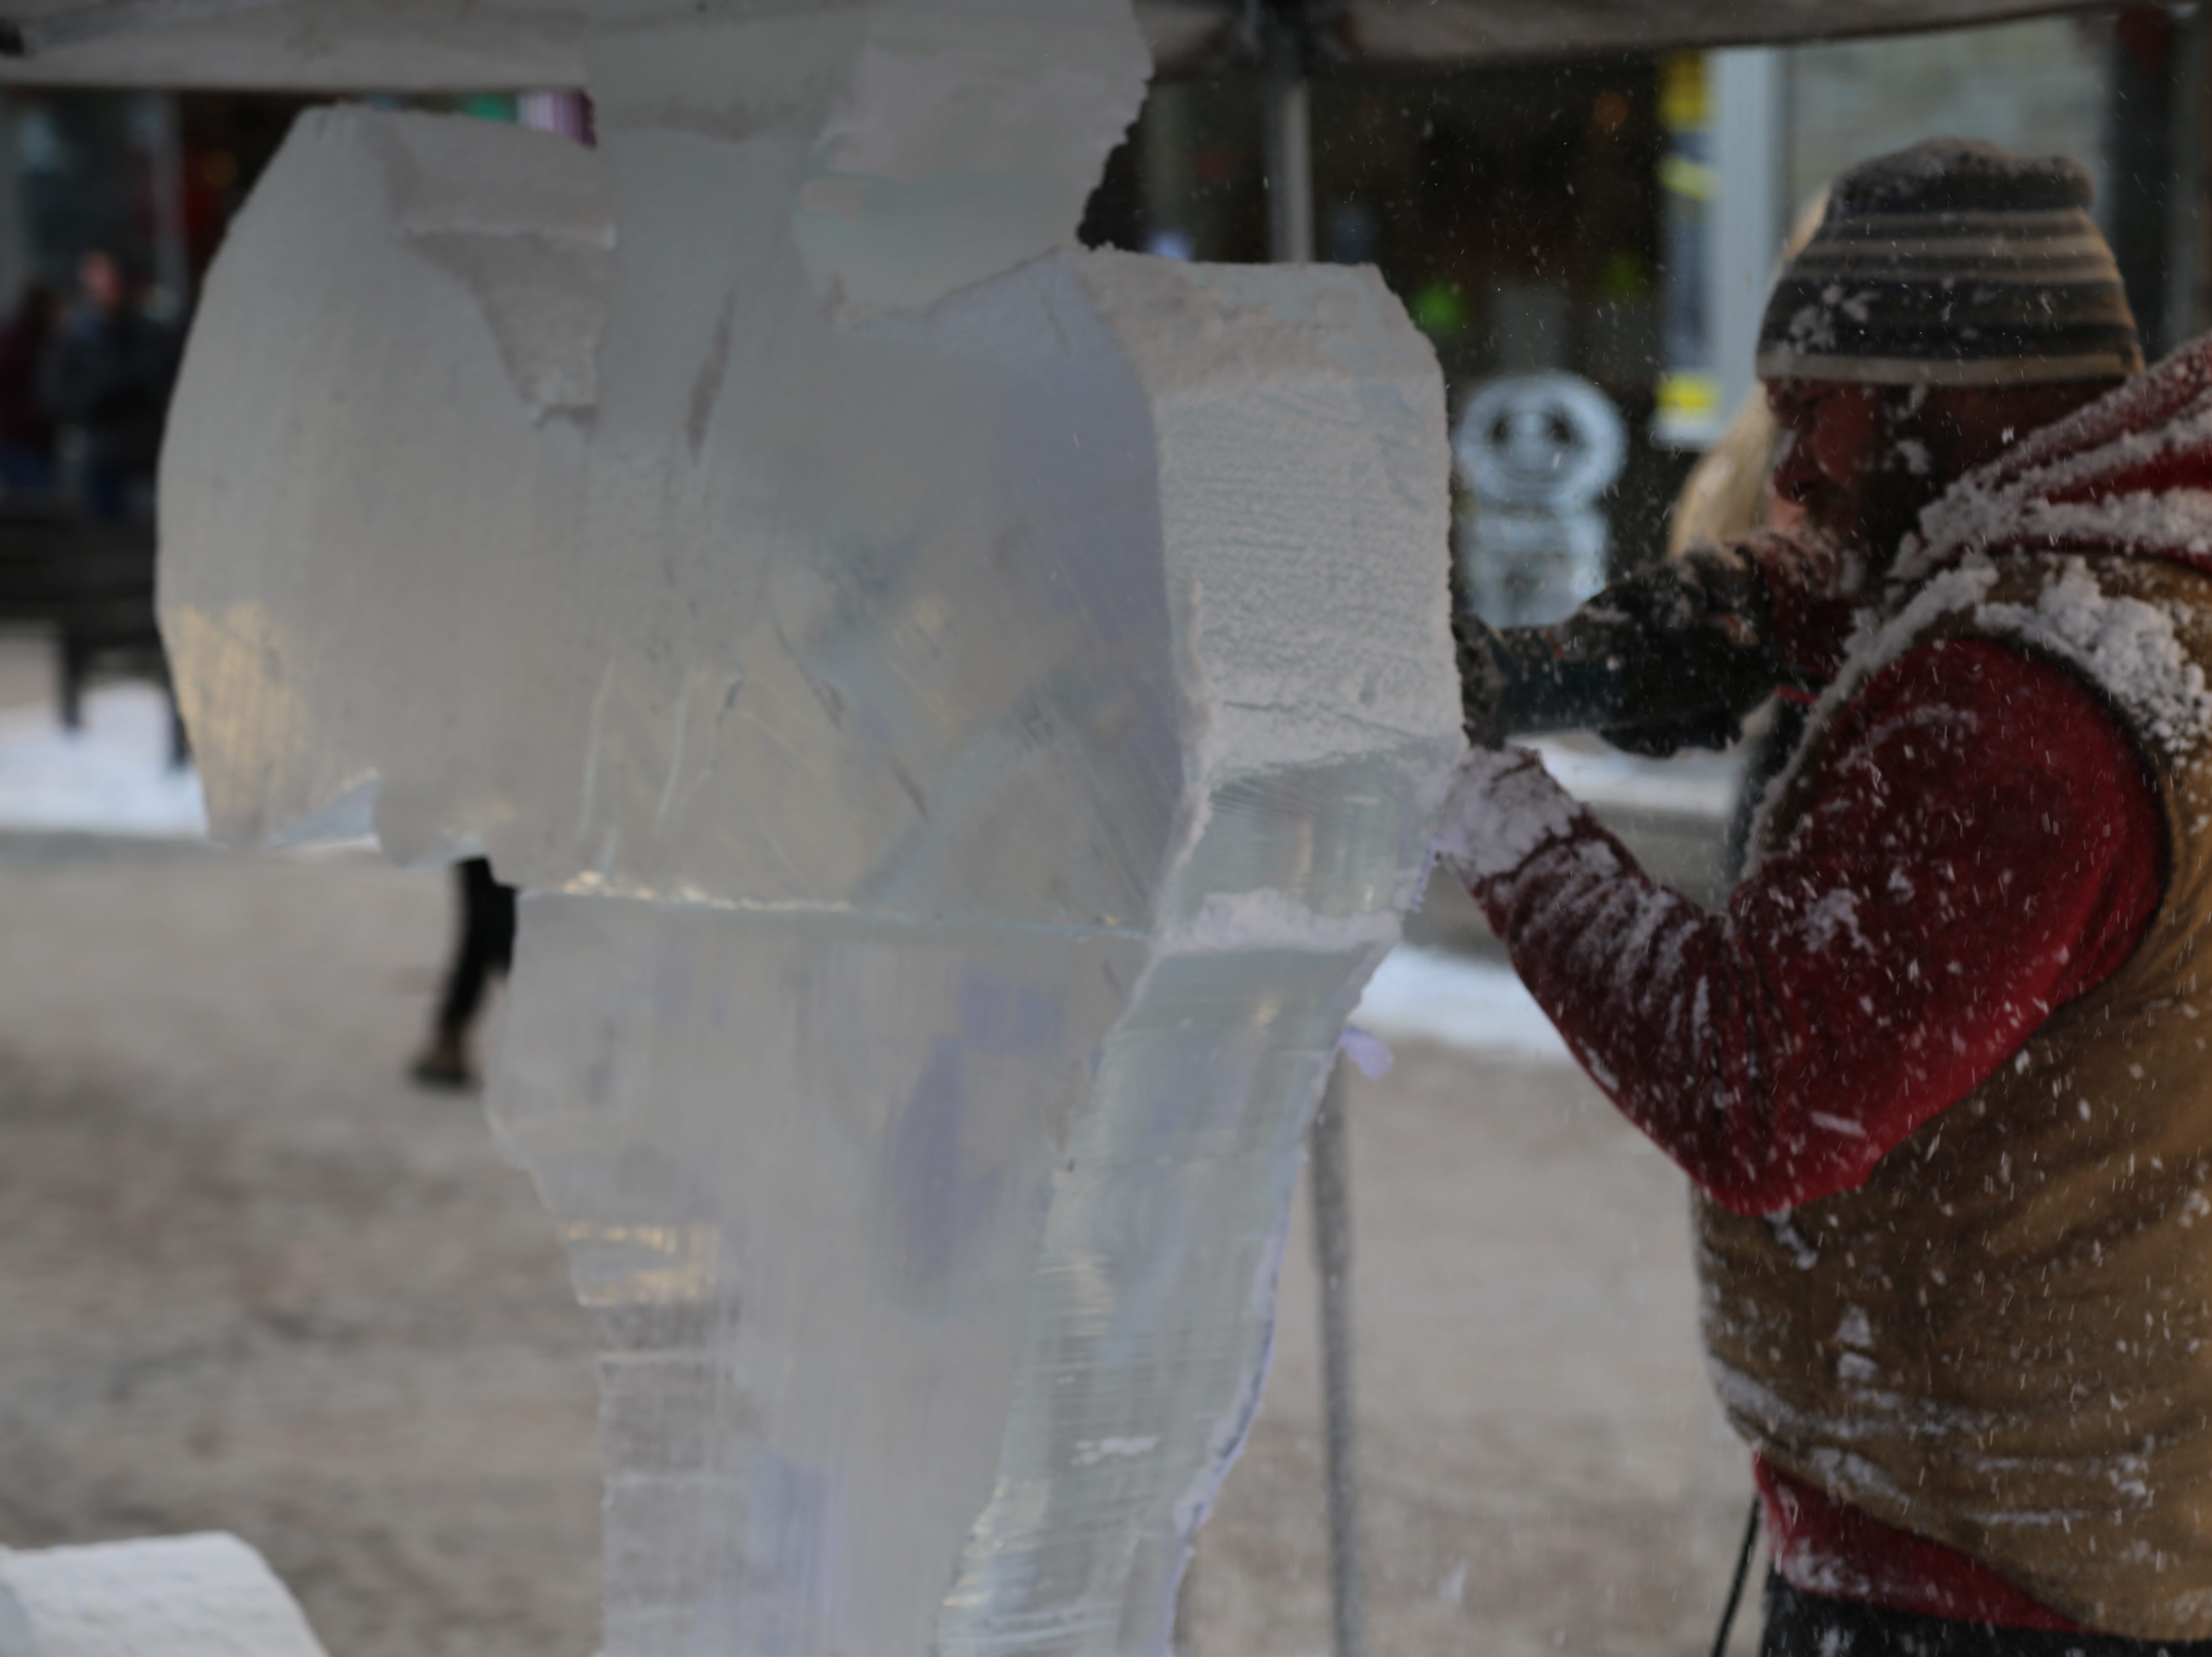 The Ithaca Ice Festival ice carving competition is a National Ice Carving Association sanctioned event.